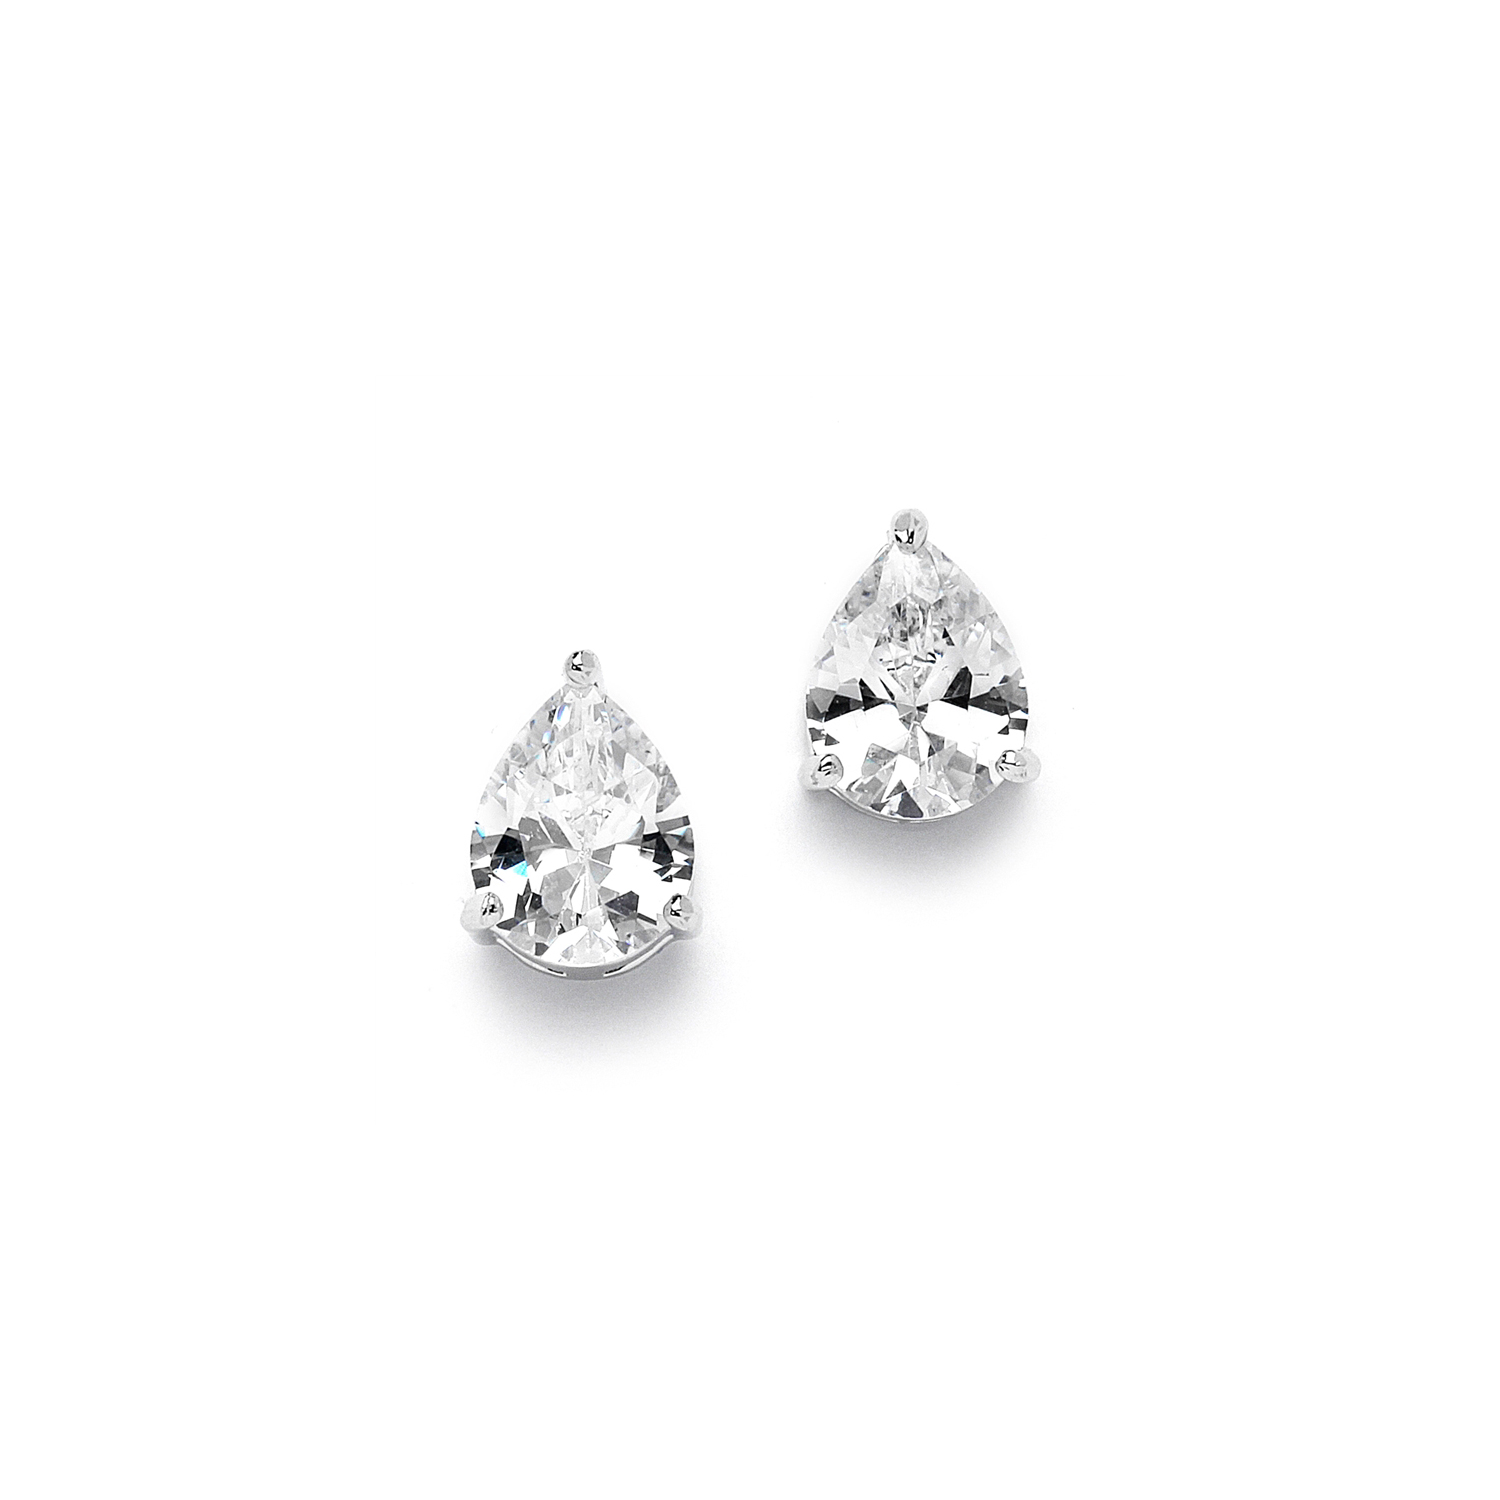 2.00 Ct. Cubic Zirconia Pear Shape Stud Earrings for Weddings or Bridesmaids<br>3989E